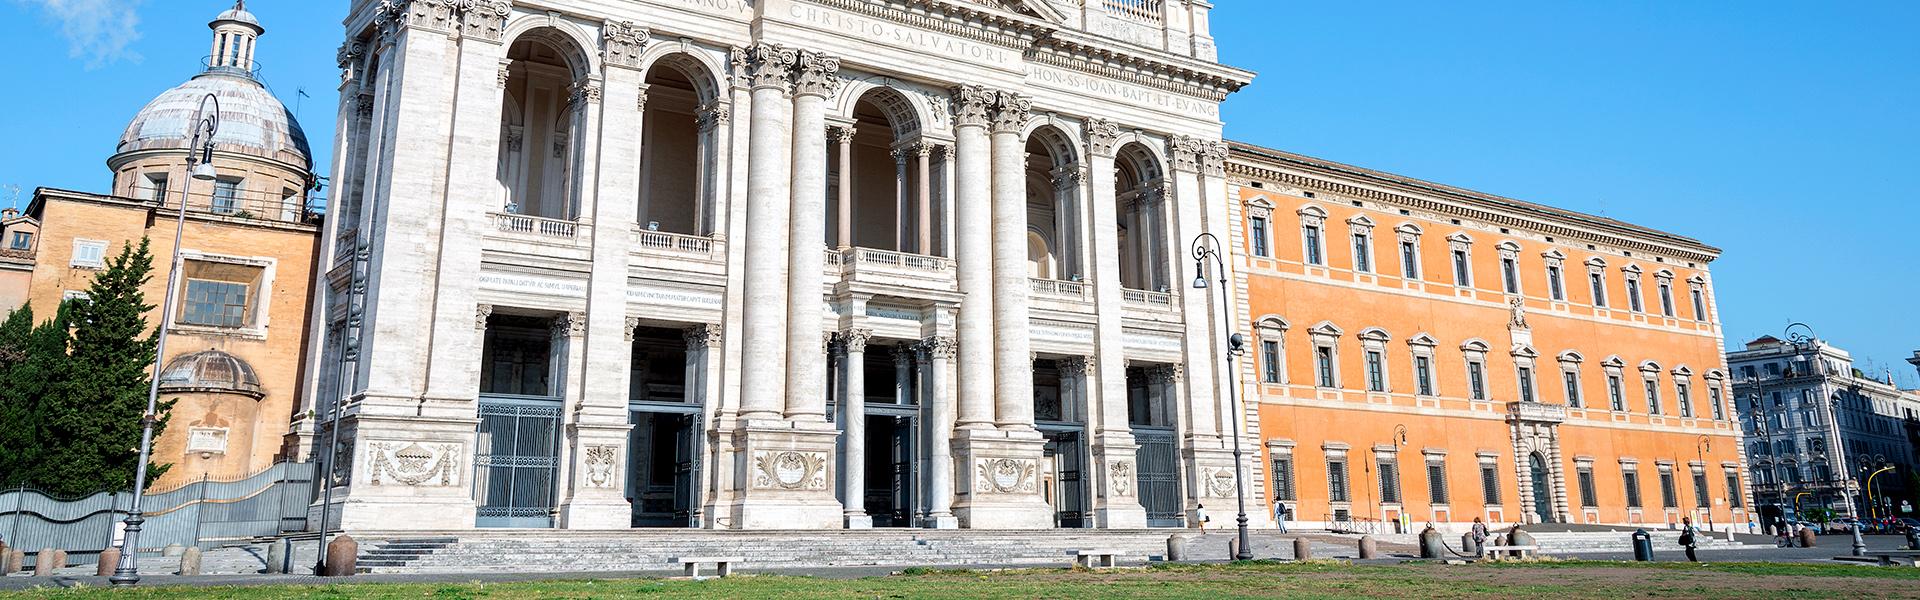 The Basilica of Saint John in the Lateran is the departure point for the Pilgrim's Way